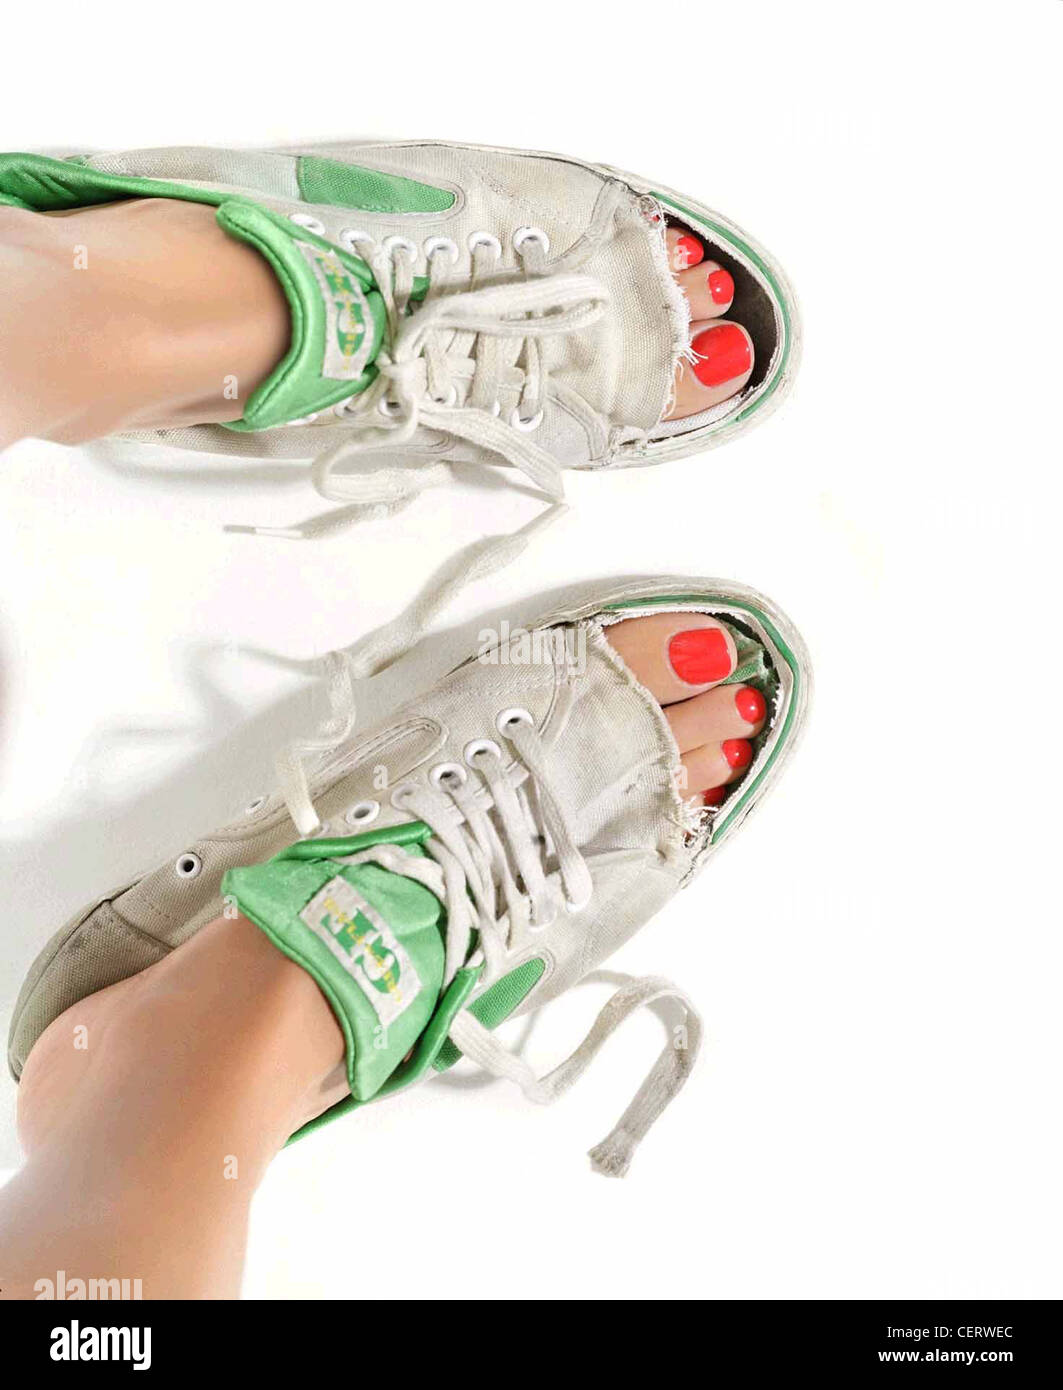 a497a355d388 Female wearing old green and white trainers with the toes cut out - Stock  Image